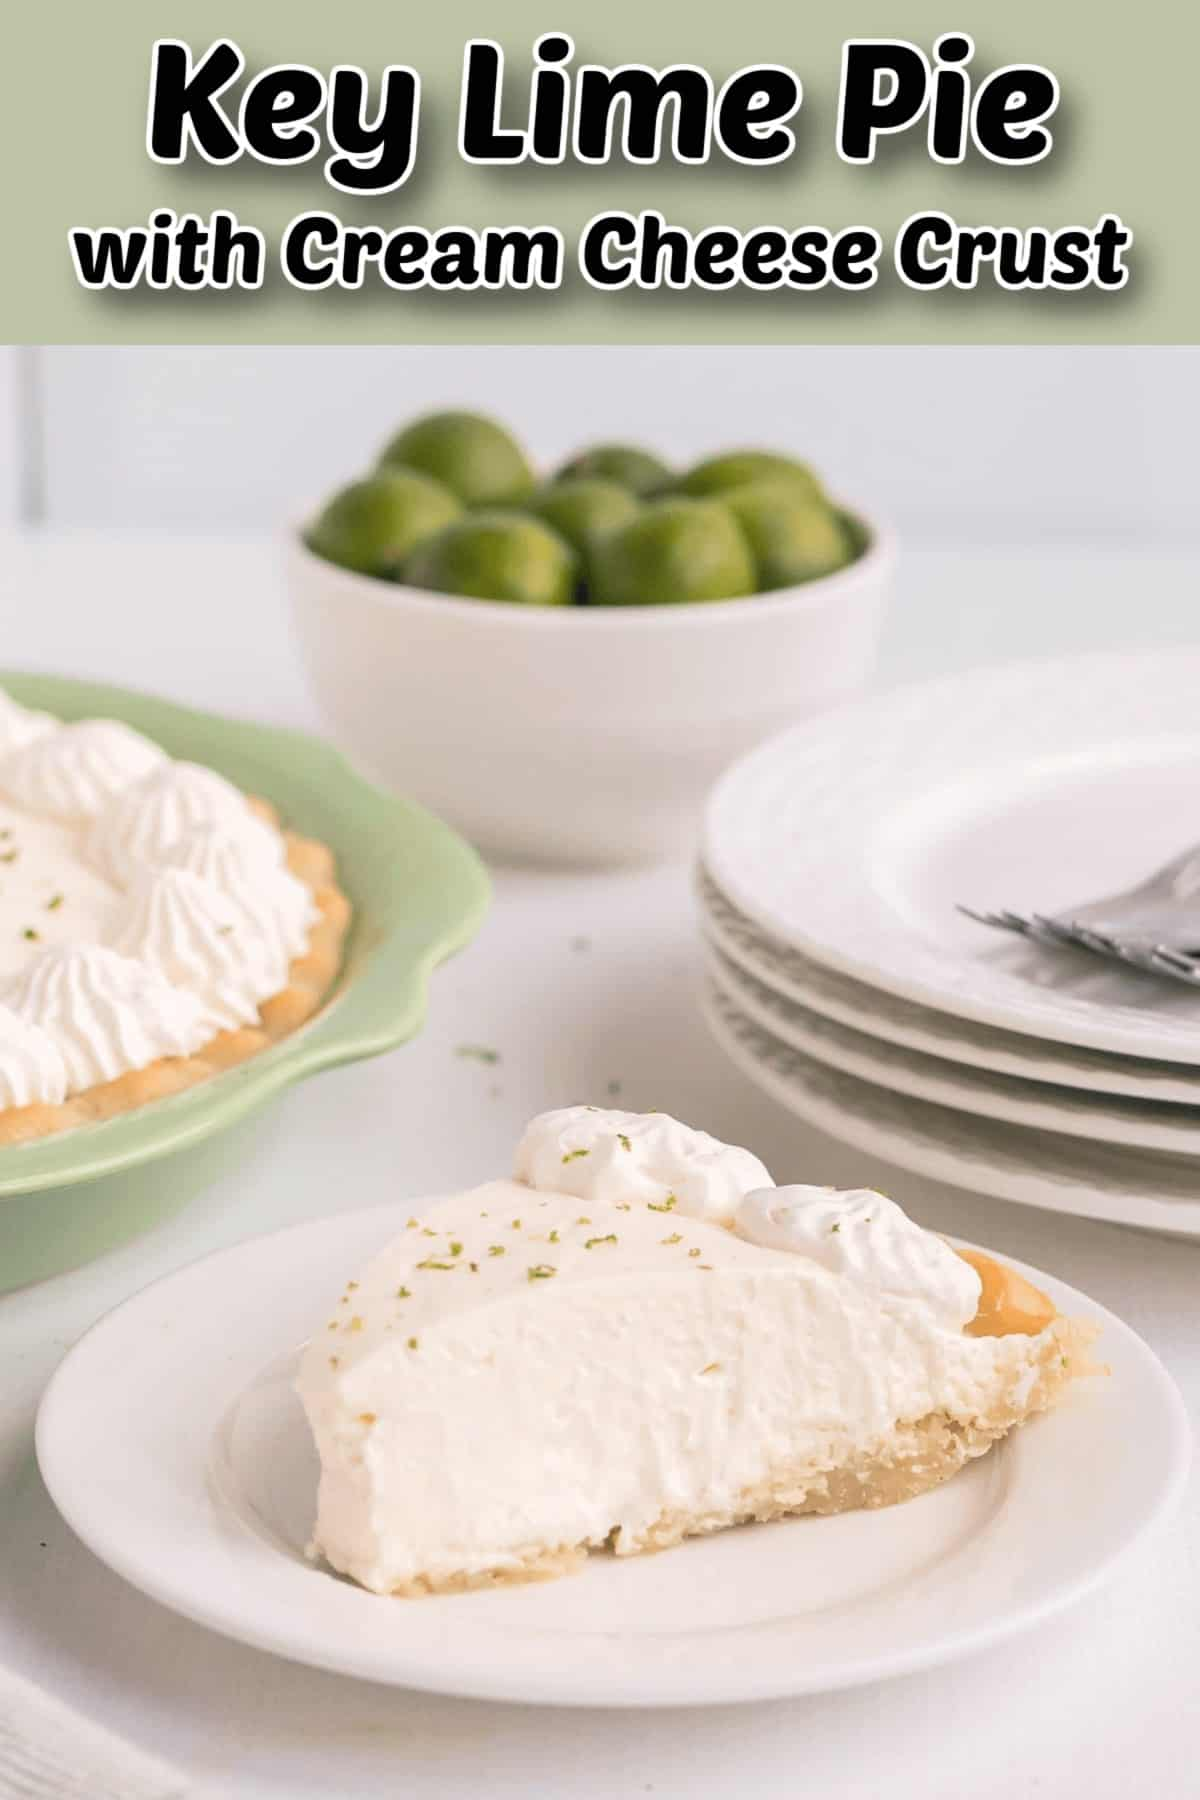 Key Lime Pie with Cream Cheese Crust Pintrest Image